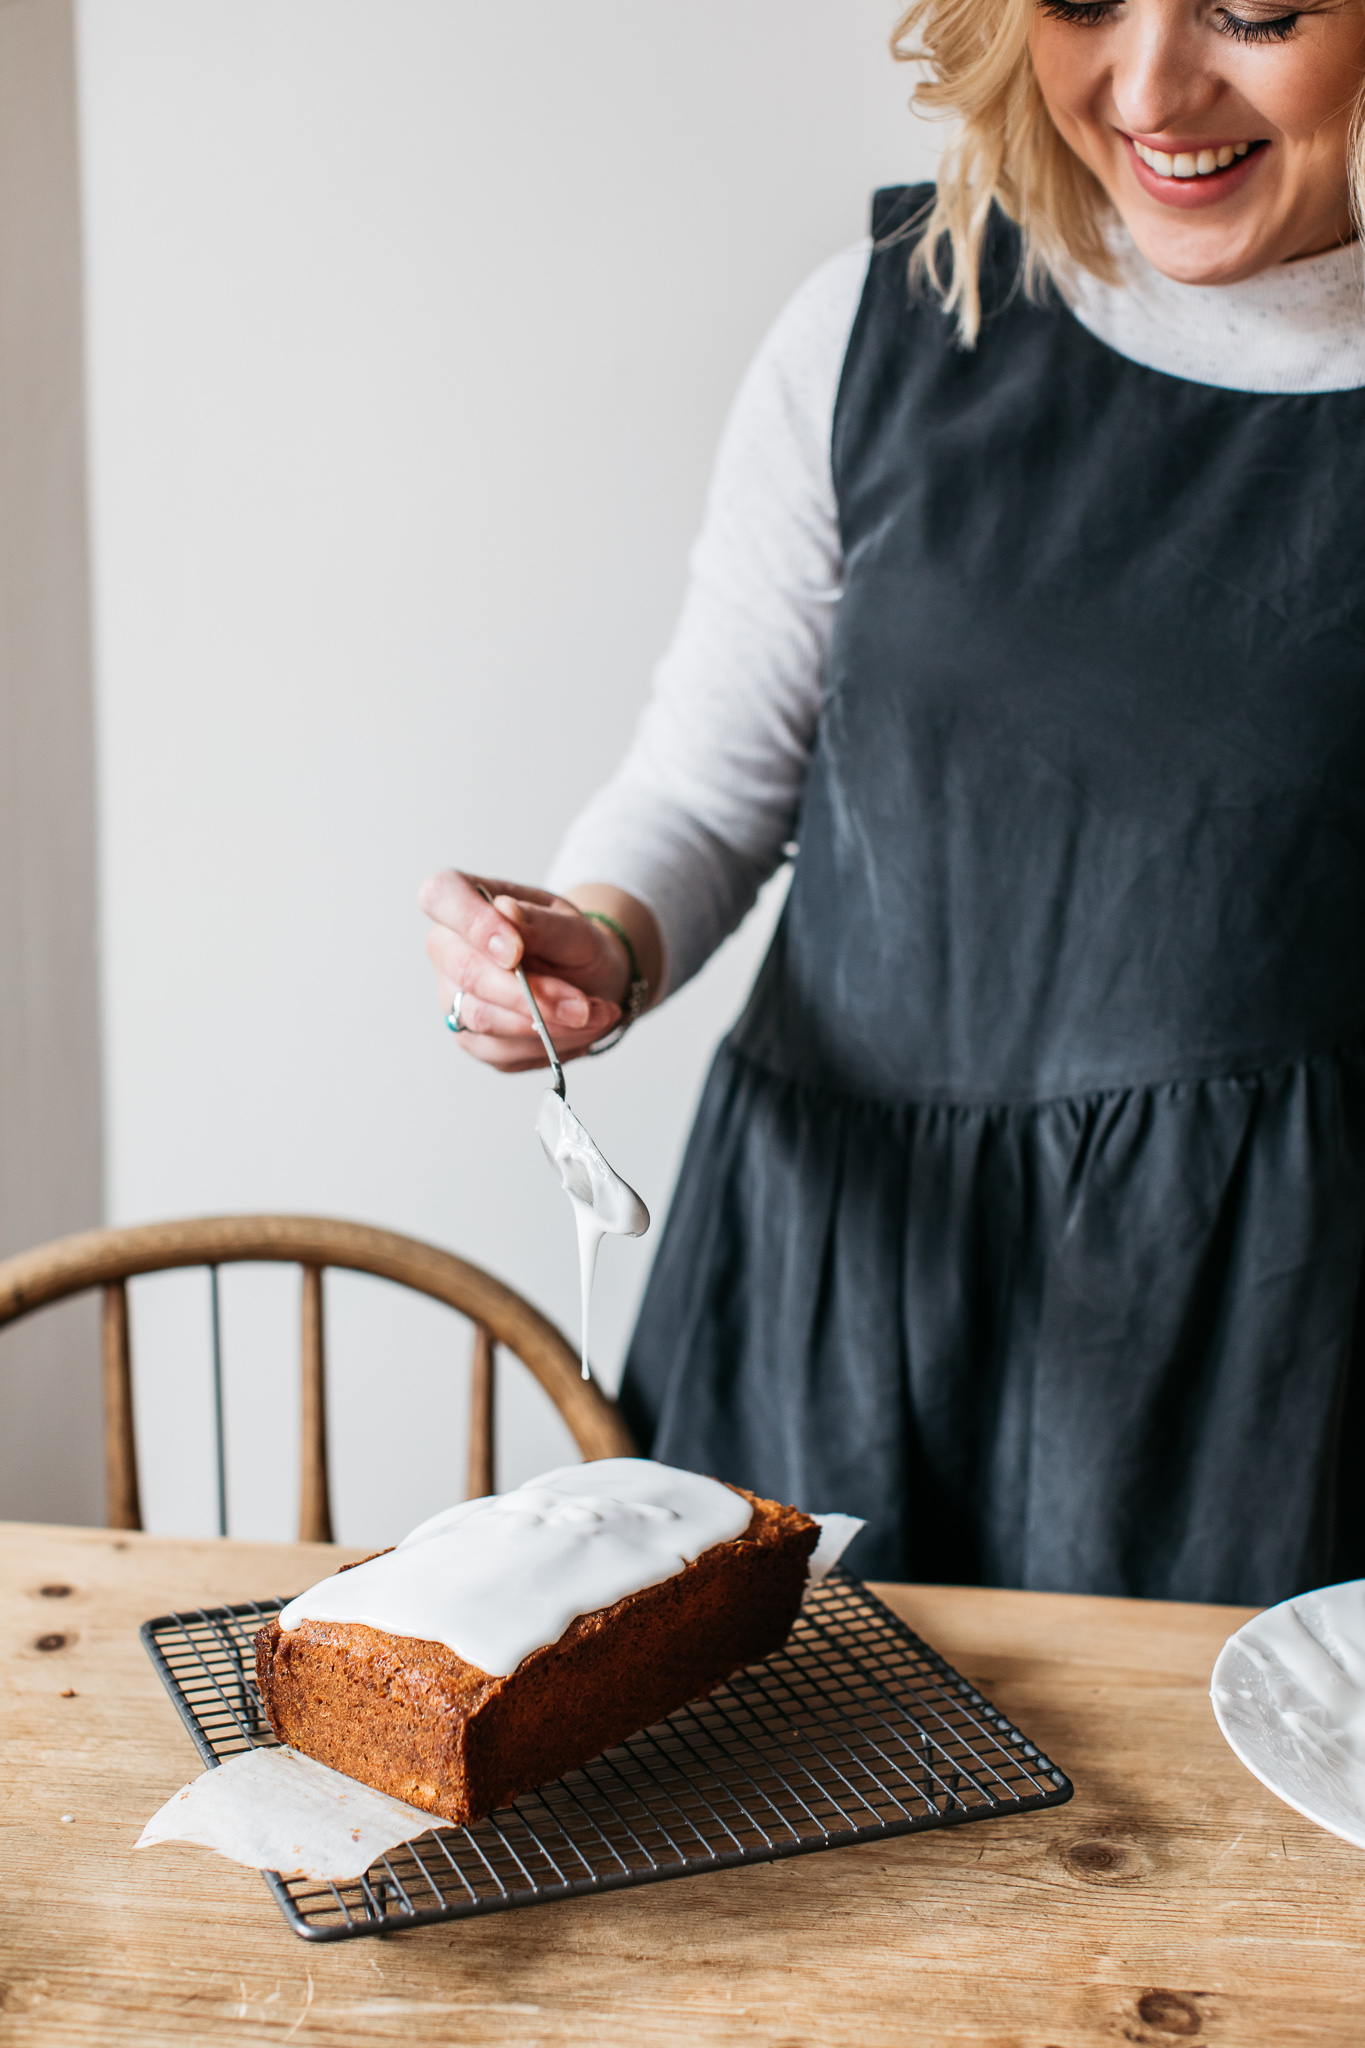 Drippy icing grapefruit and poppy seed loaf cake